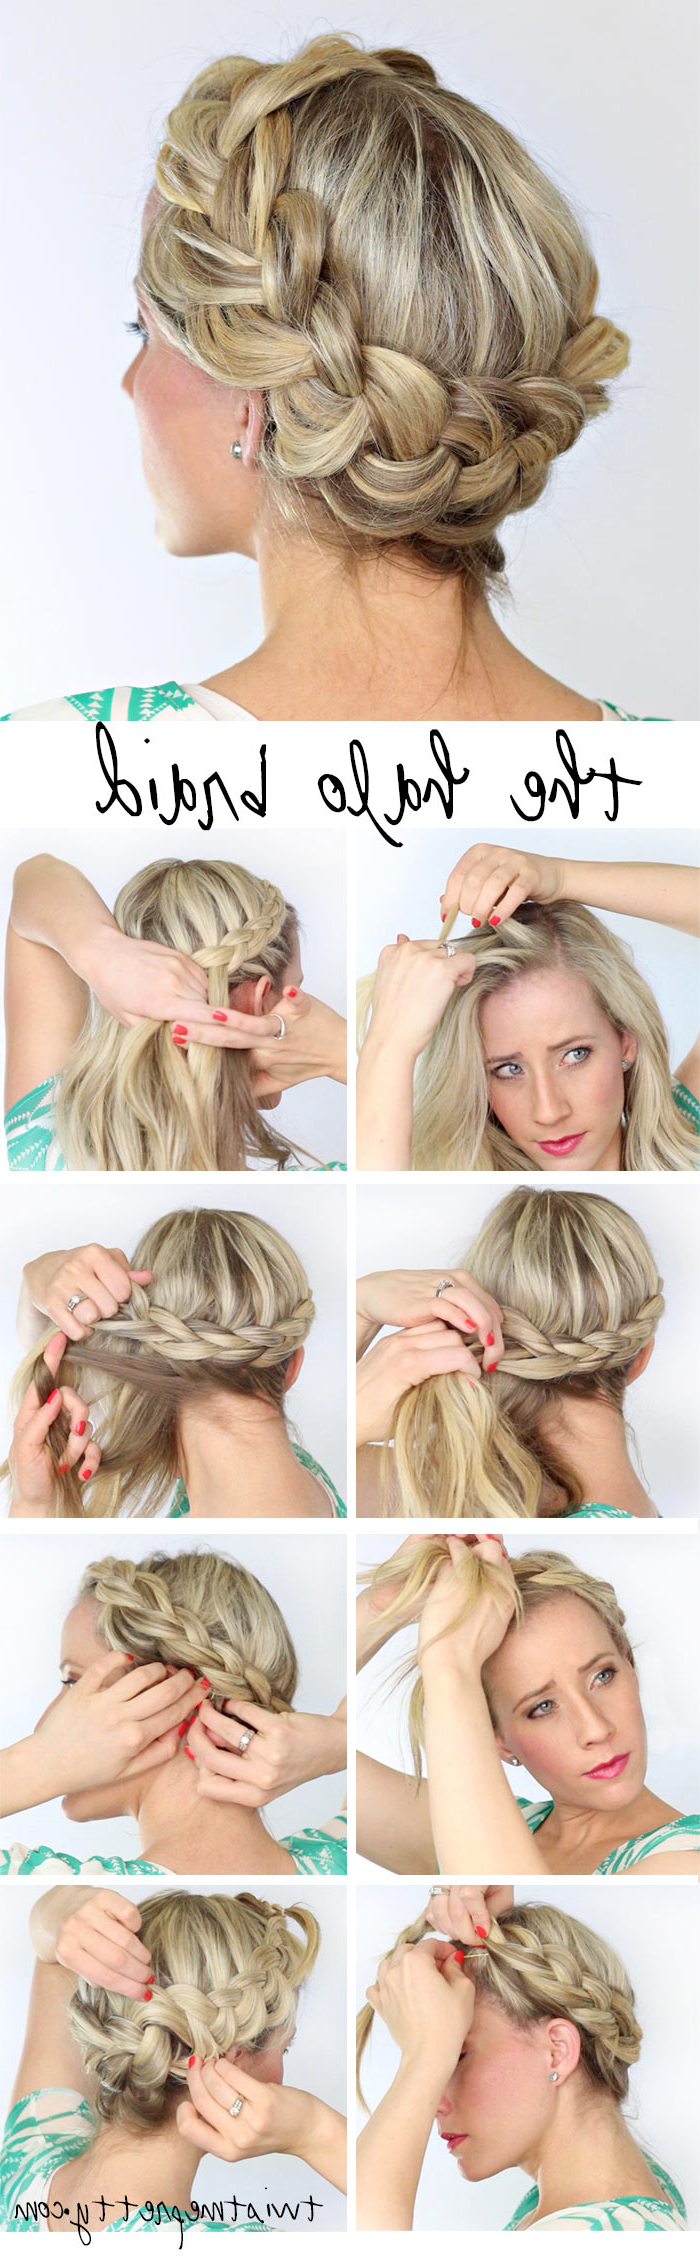 A Fat Halo Braid – Twist Me Pretty Pertaining To Most Recently Released Halo Braided Hairstyles With Bangs (View 2 of 20)